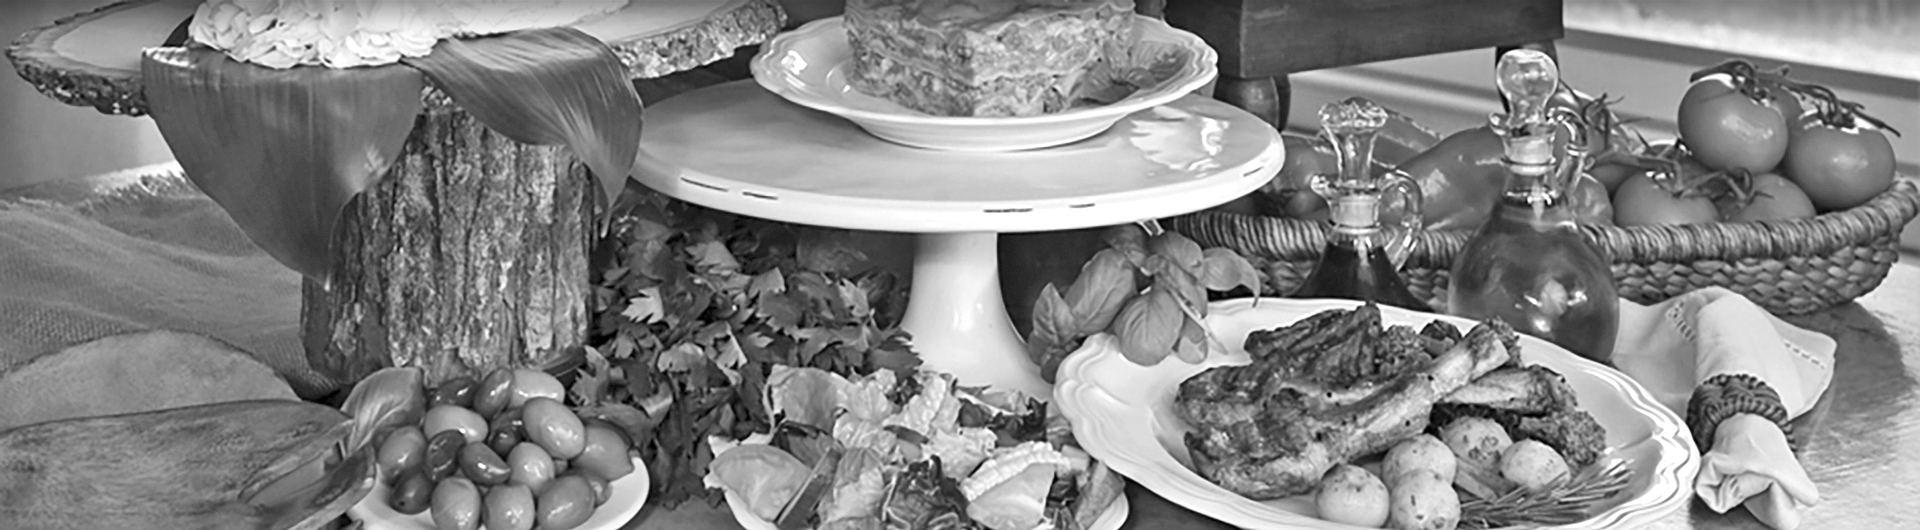 catering-banner-1920x530-BW